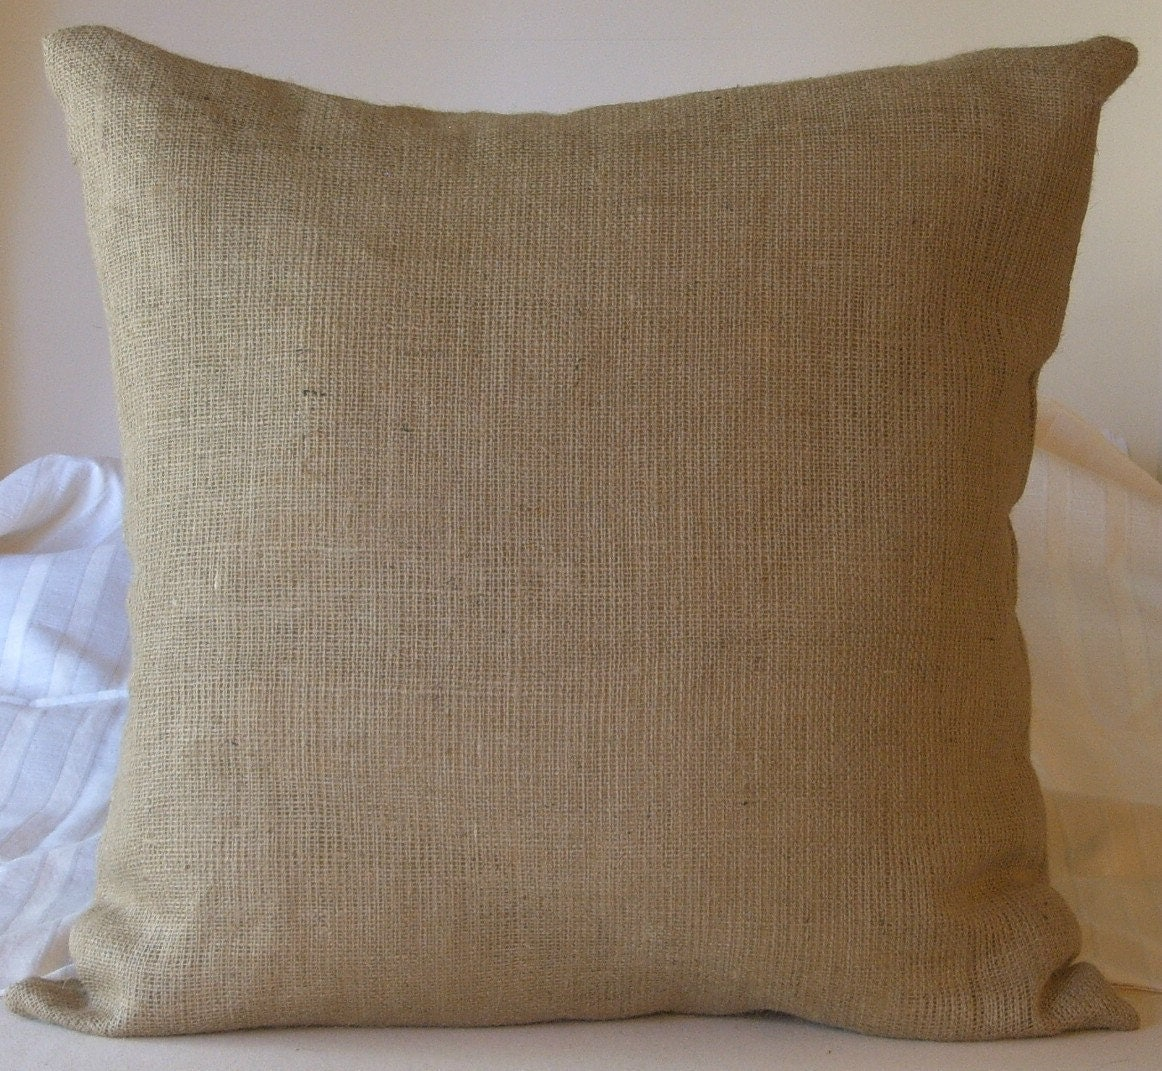 Burlap Euro Shams Pillow Cover 28 X 28 Lined For